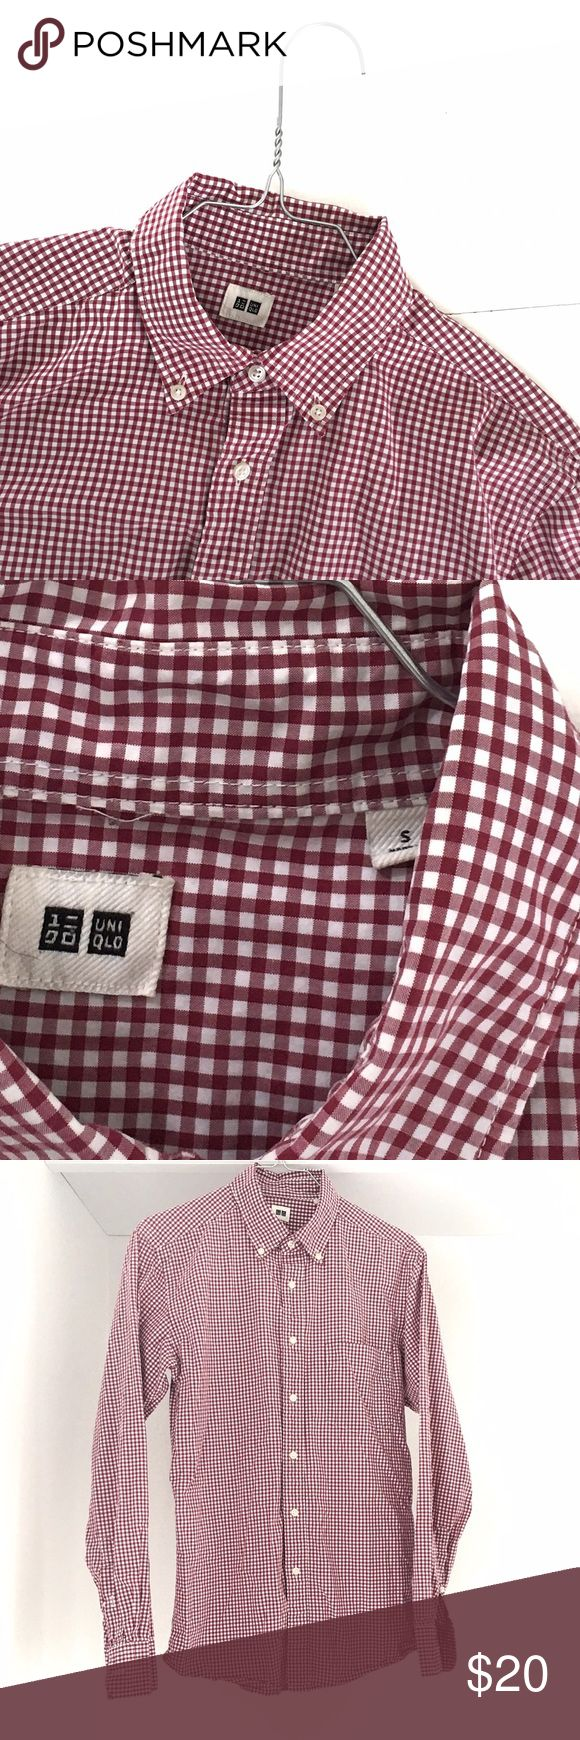 Selling this Men's Red Checkered UNIQLO Collared Shirt on Poshmark! My username is: dive_co. #shopmycloset #poshmark #fashion #shopping #style #forsale #Uniqlo #Other